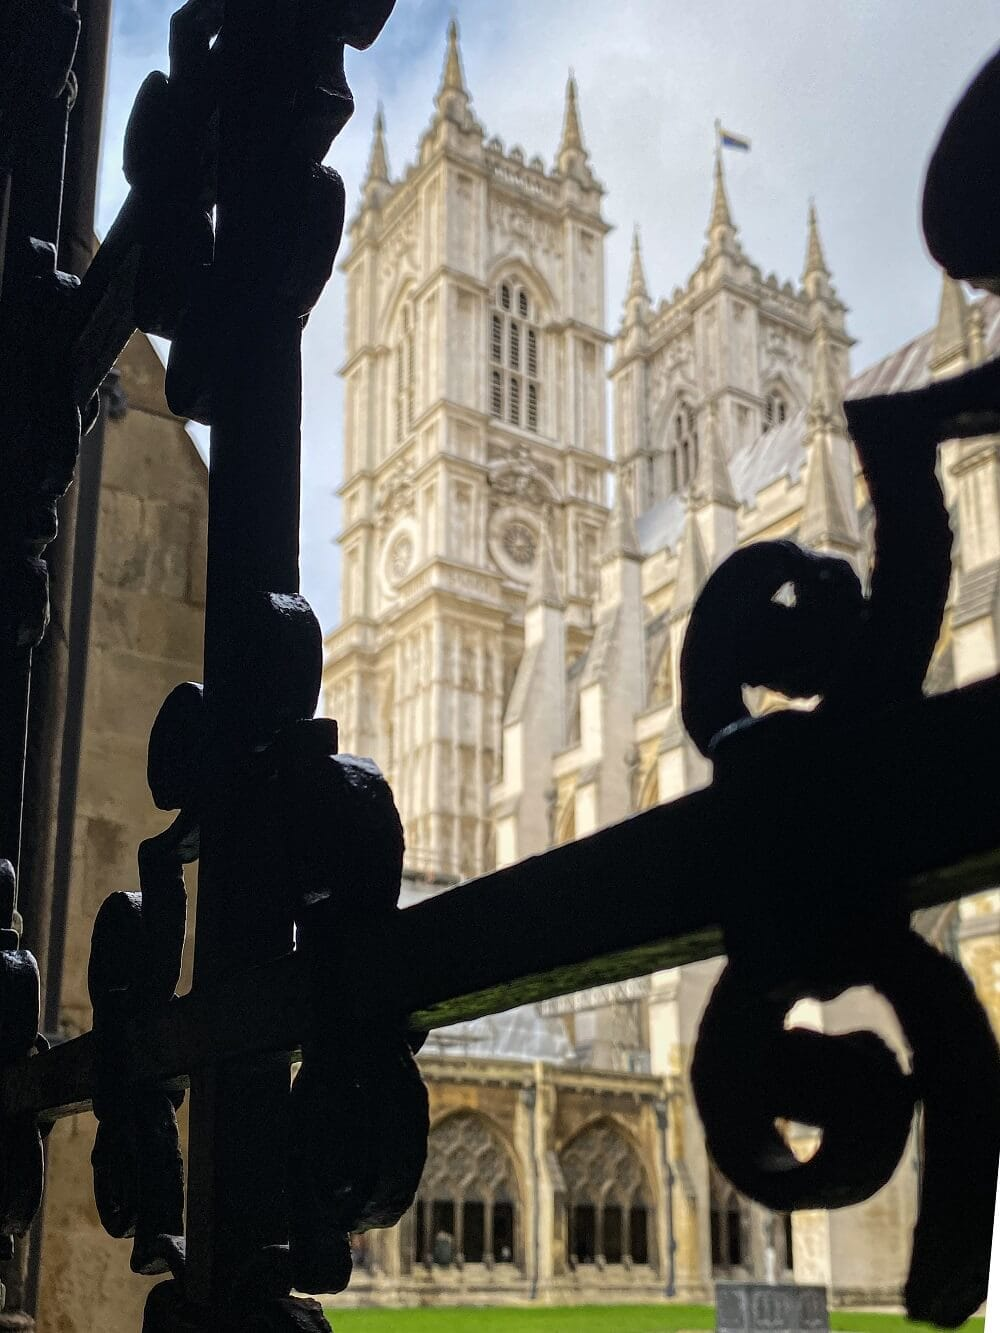 view of Westminster Abbey through iron bars in the Cloisters